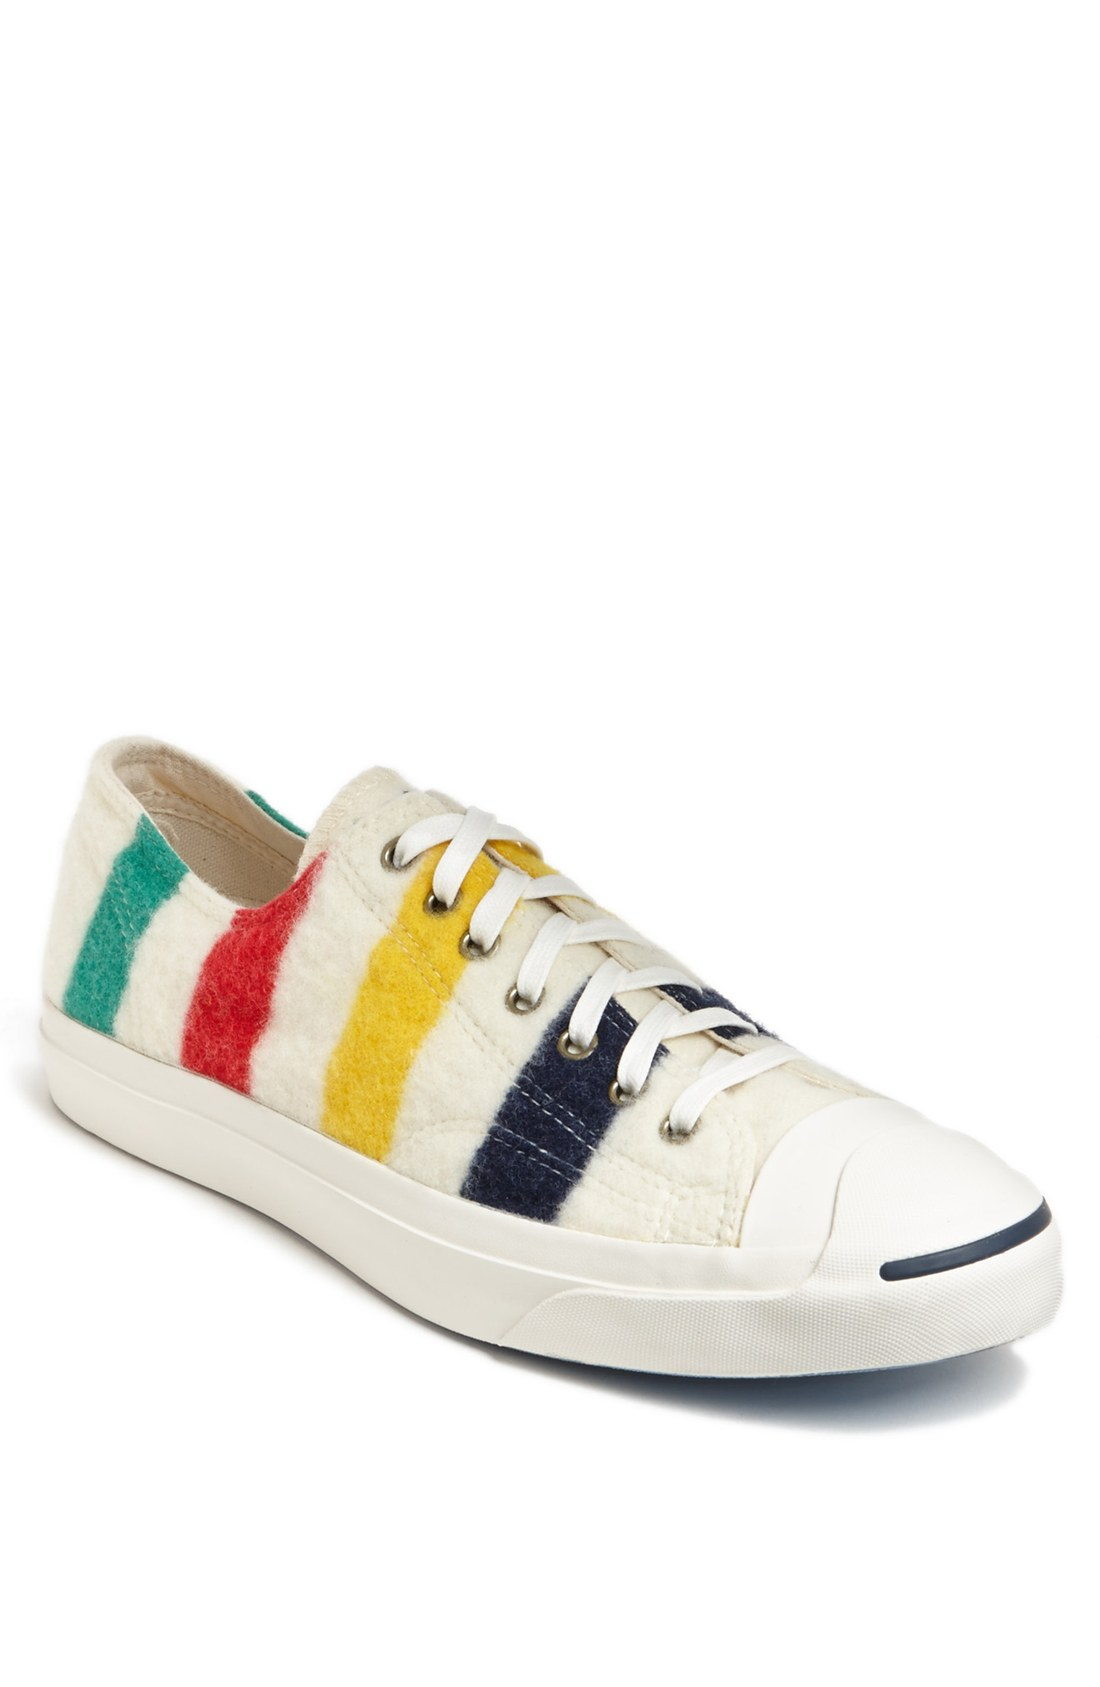 e7bdfe5d2 Snow White Converse Related Keywords   Suggestions - Snow White ...